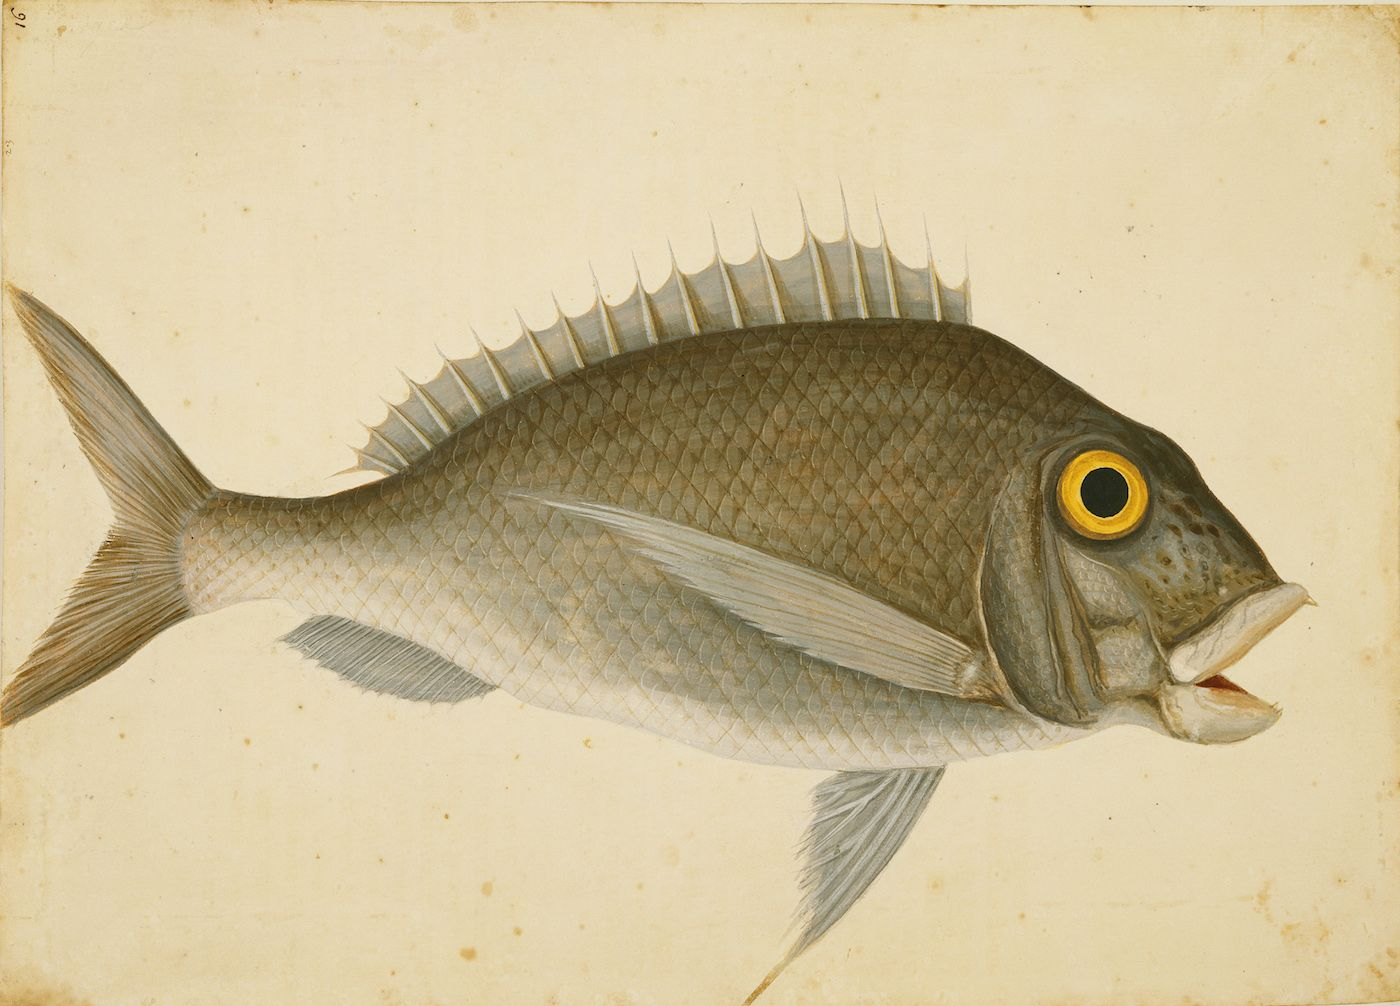 A Rare Loan from Windsor Castle Brings Mark Catesby's Watercolors to South Carolina